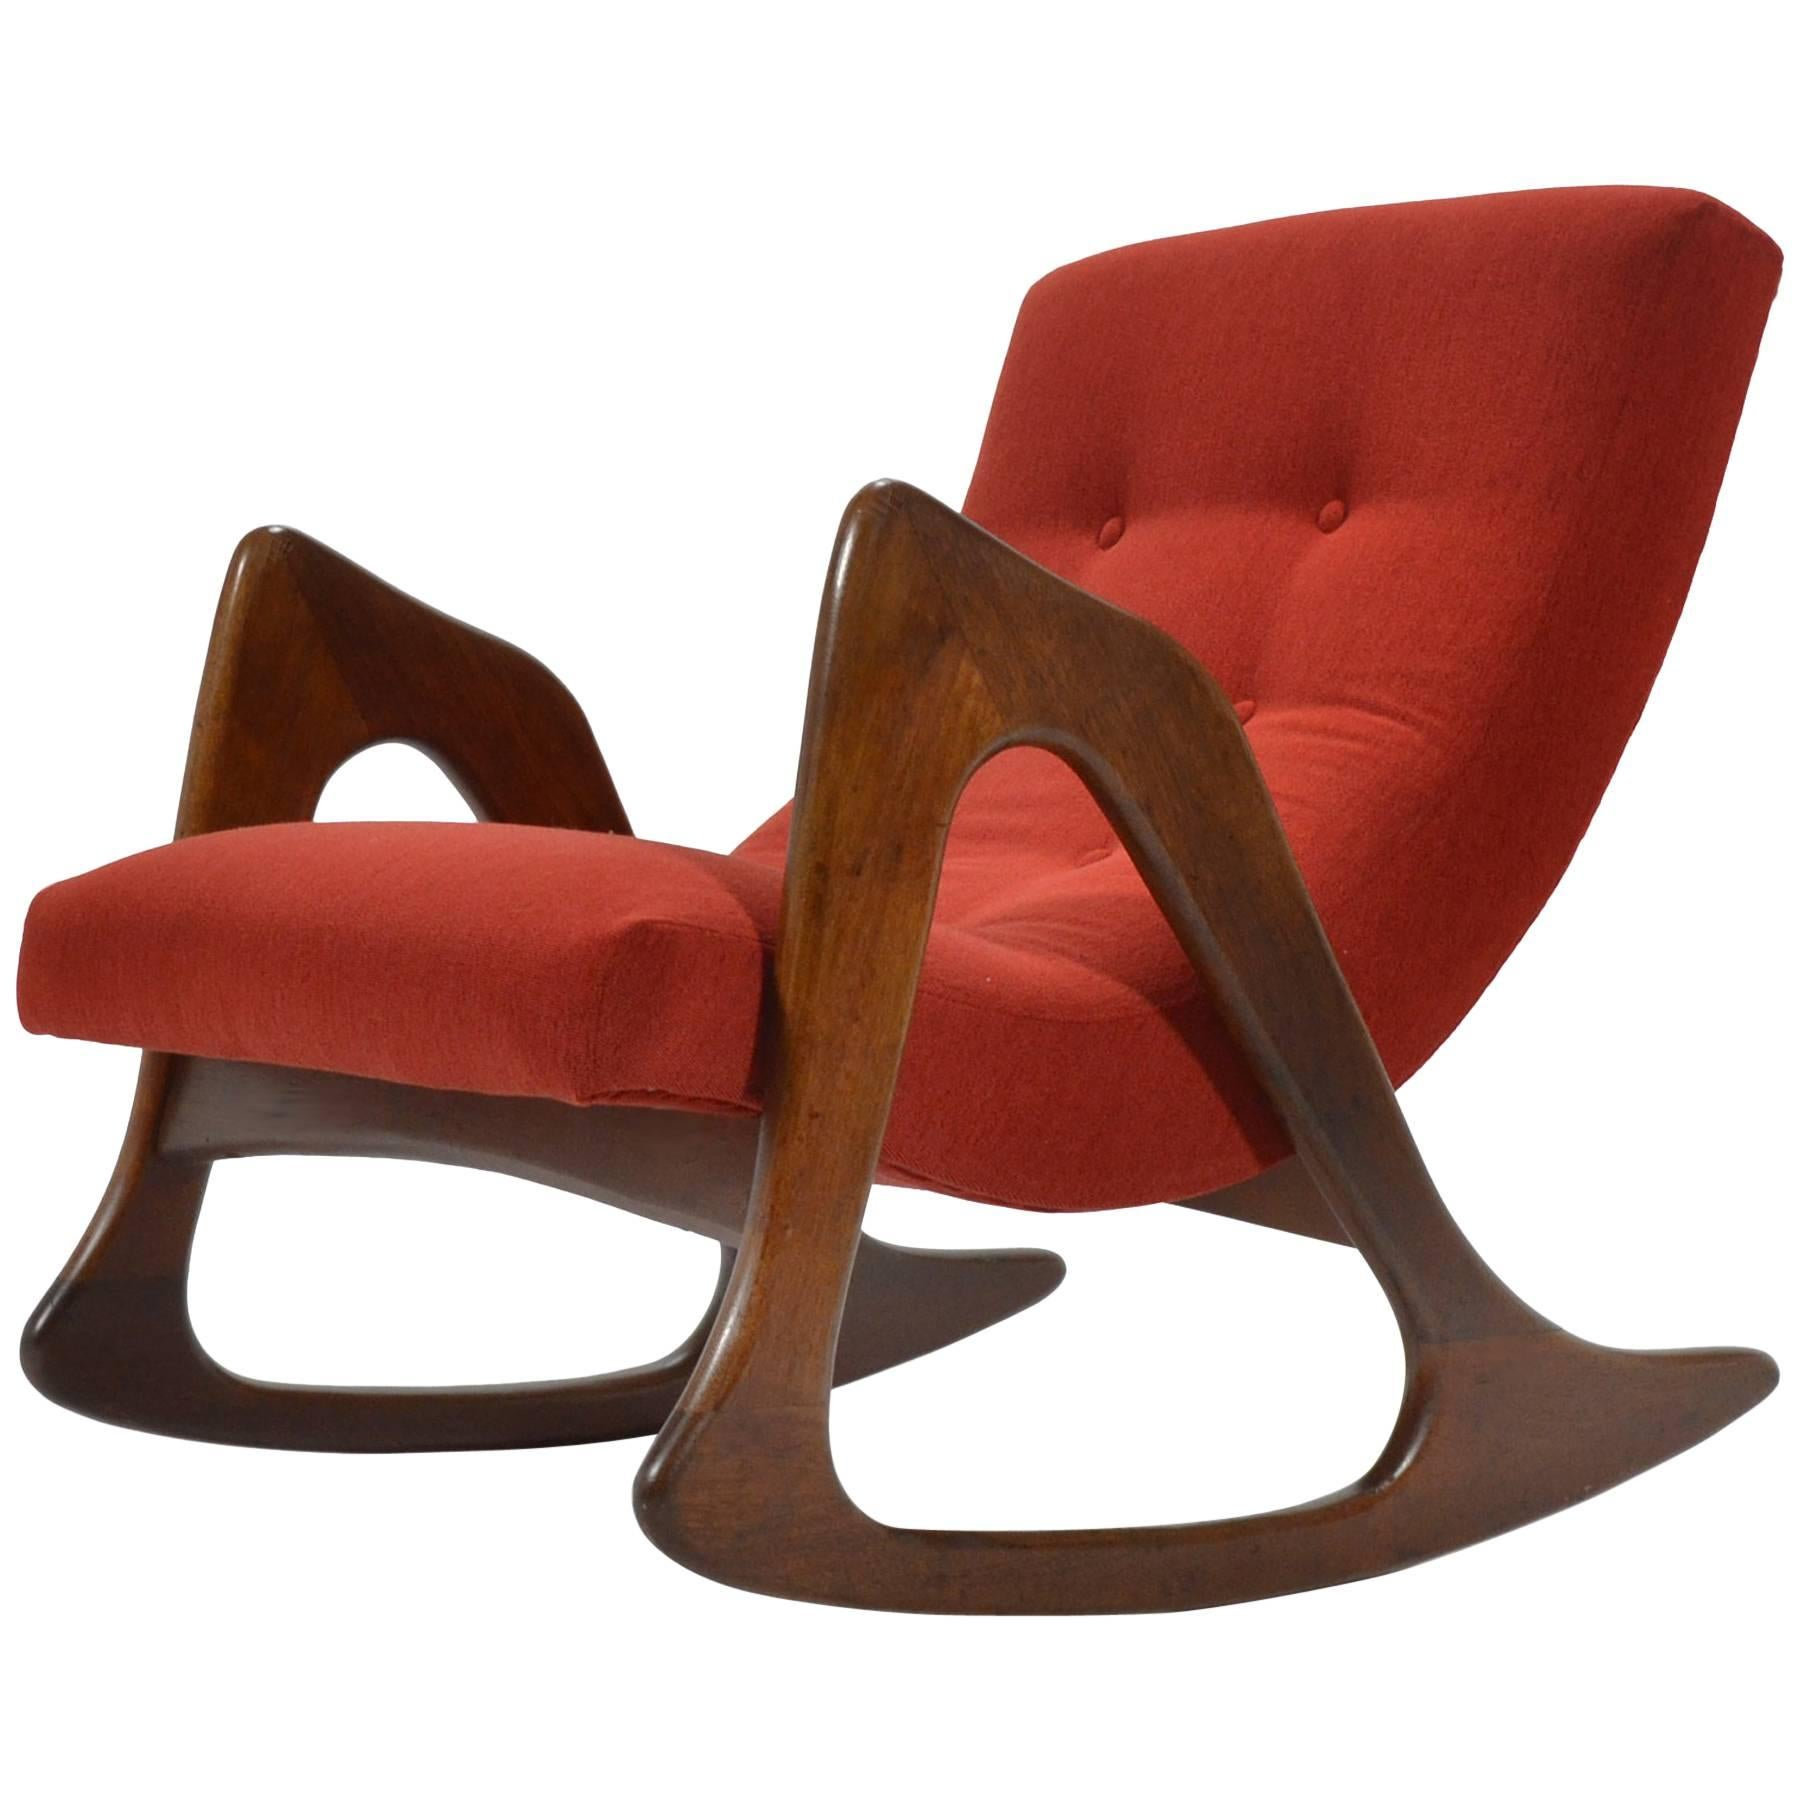 Adrian Pearsall Rocking Chair by Craft Associates  sc 1 st  1stDibs : adrian pearsall rocking chaise - Sectionals, Sofas & Couches